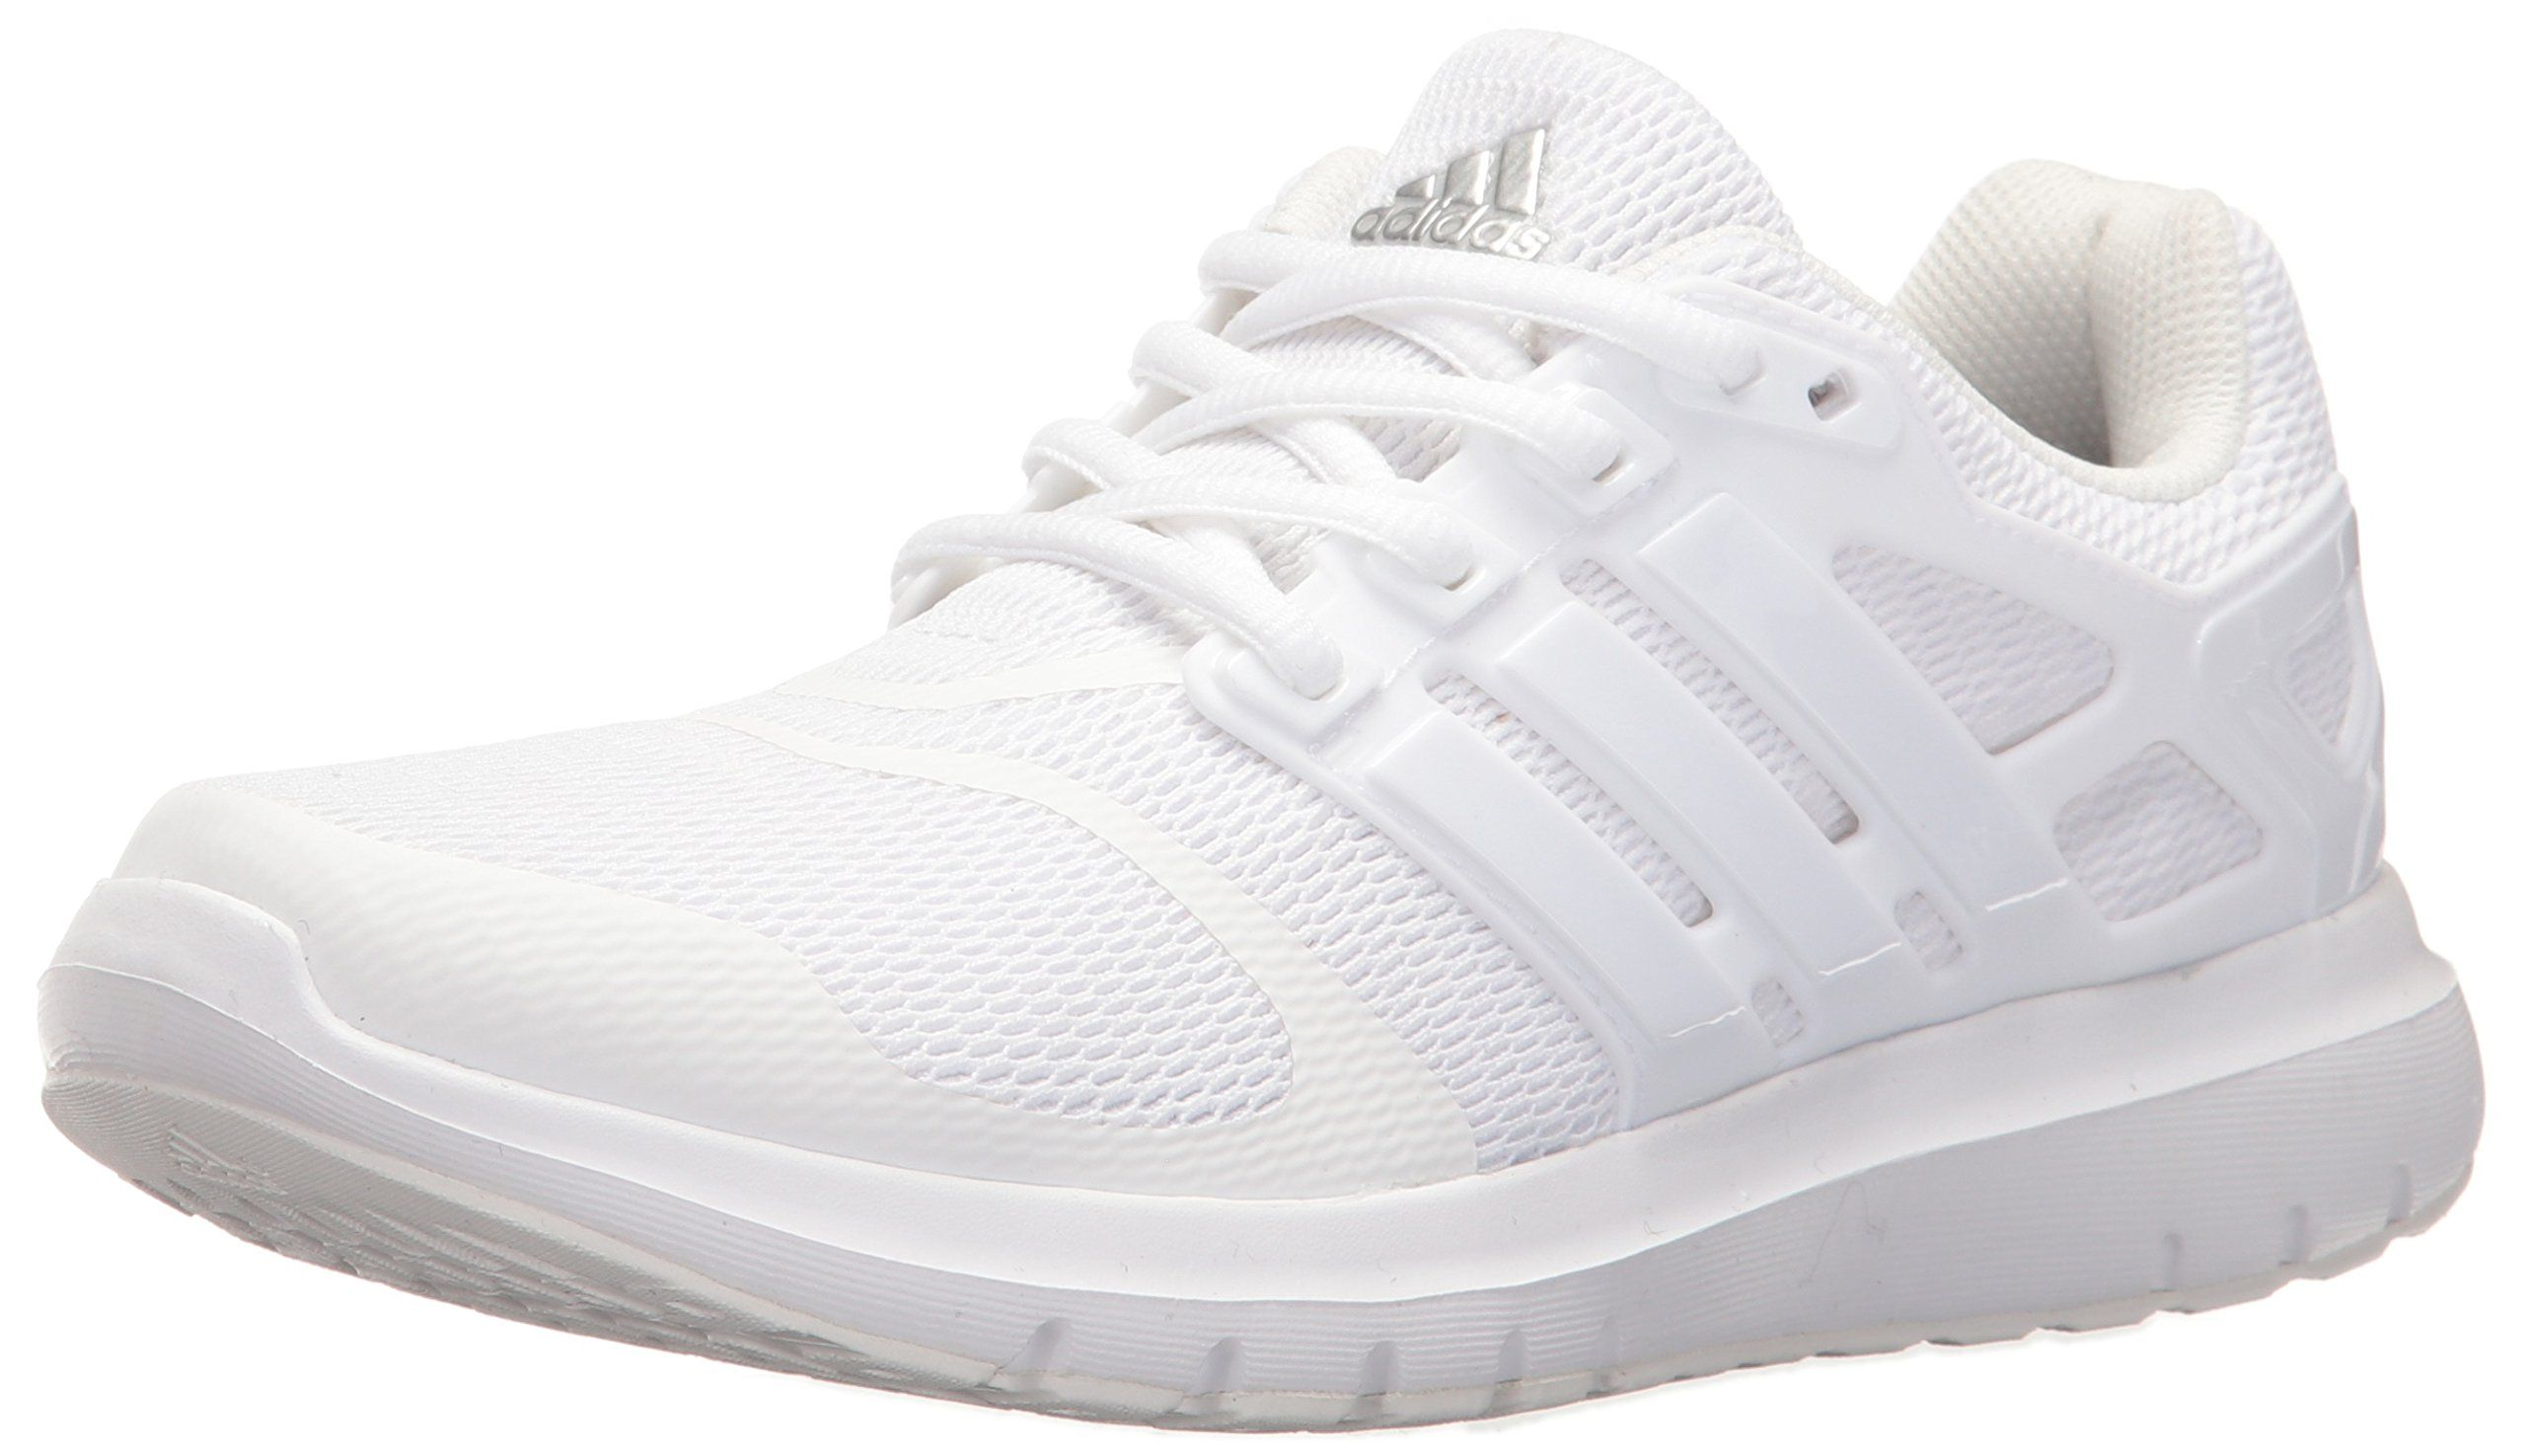 Polinizador Decimal veterano  adidas Womens Energy Cloud V Running Shoe White/White/Crystal White S 8.5 M  US ** Click image to review mor… | Adidas shoes outlet, Adidas women,  Casual sport shoes